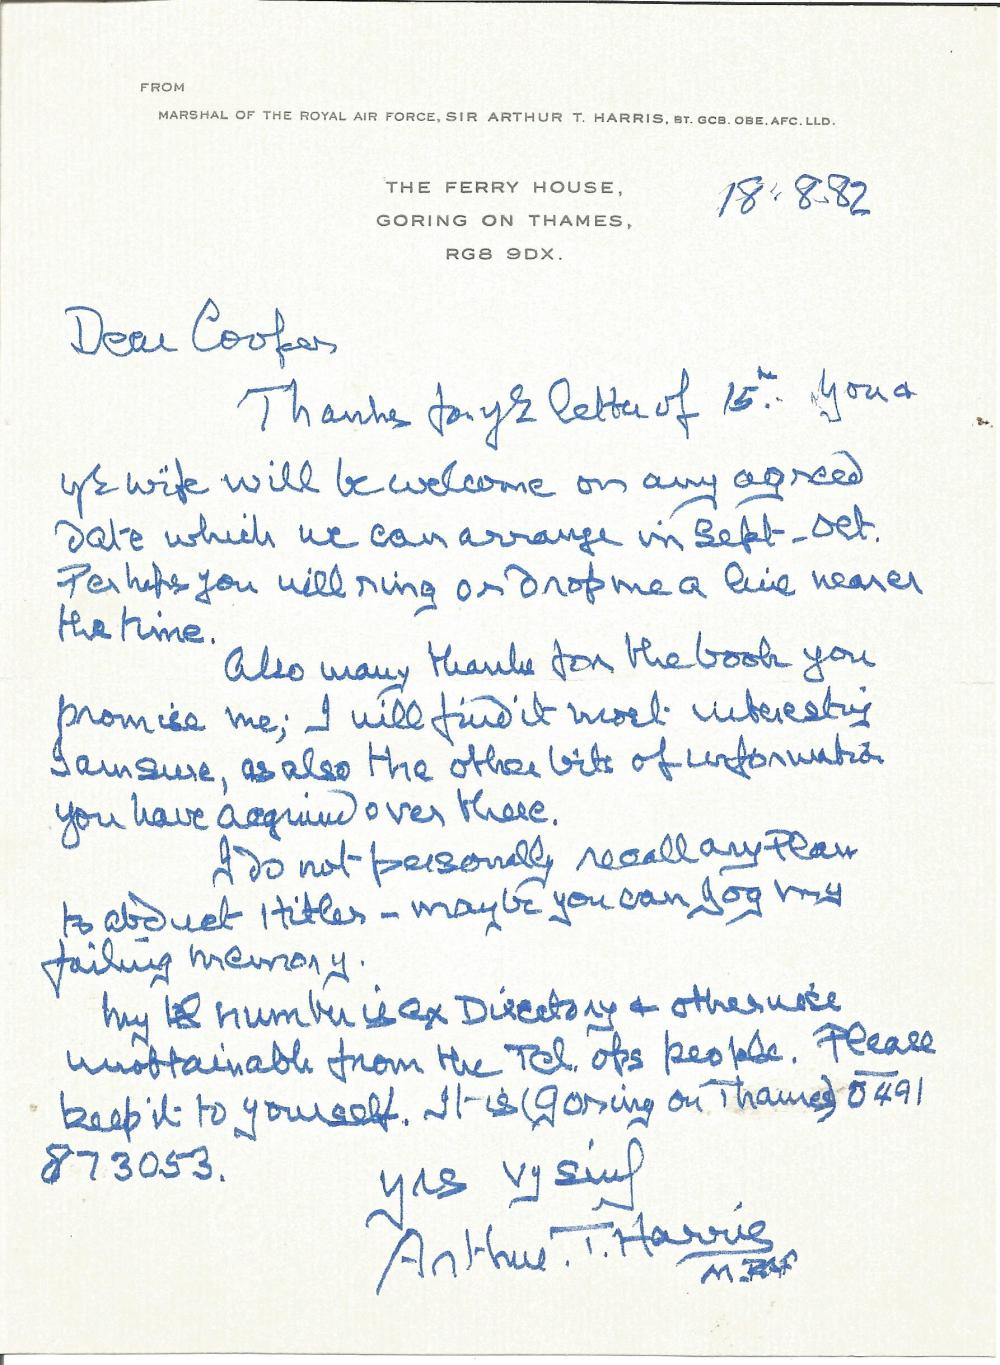 Marshall of The Royal Air Force Sir Arthur T Harris ALS addressed to Mr Cooper thanking him for a